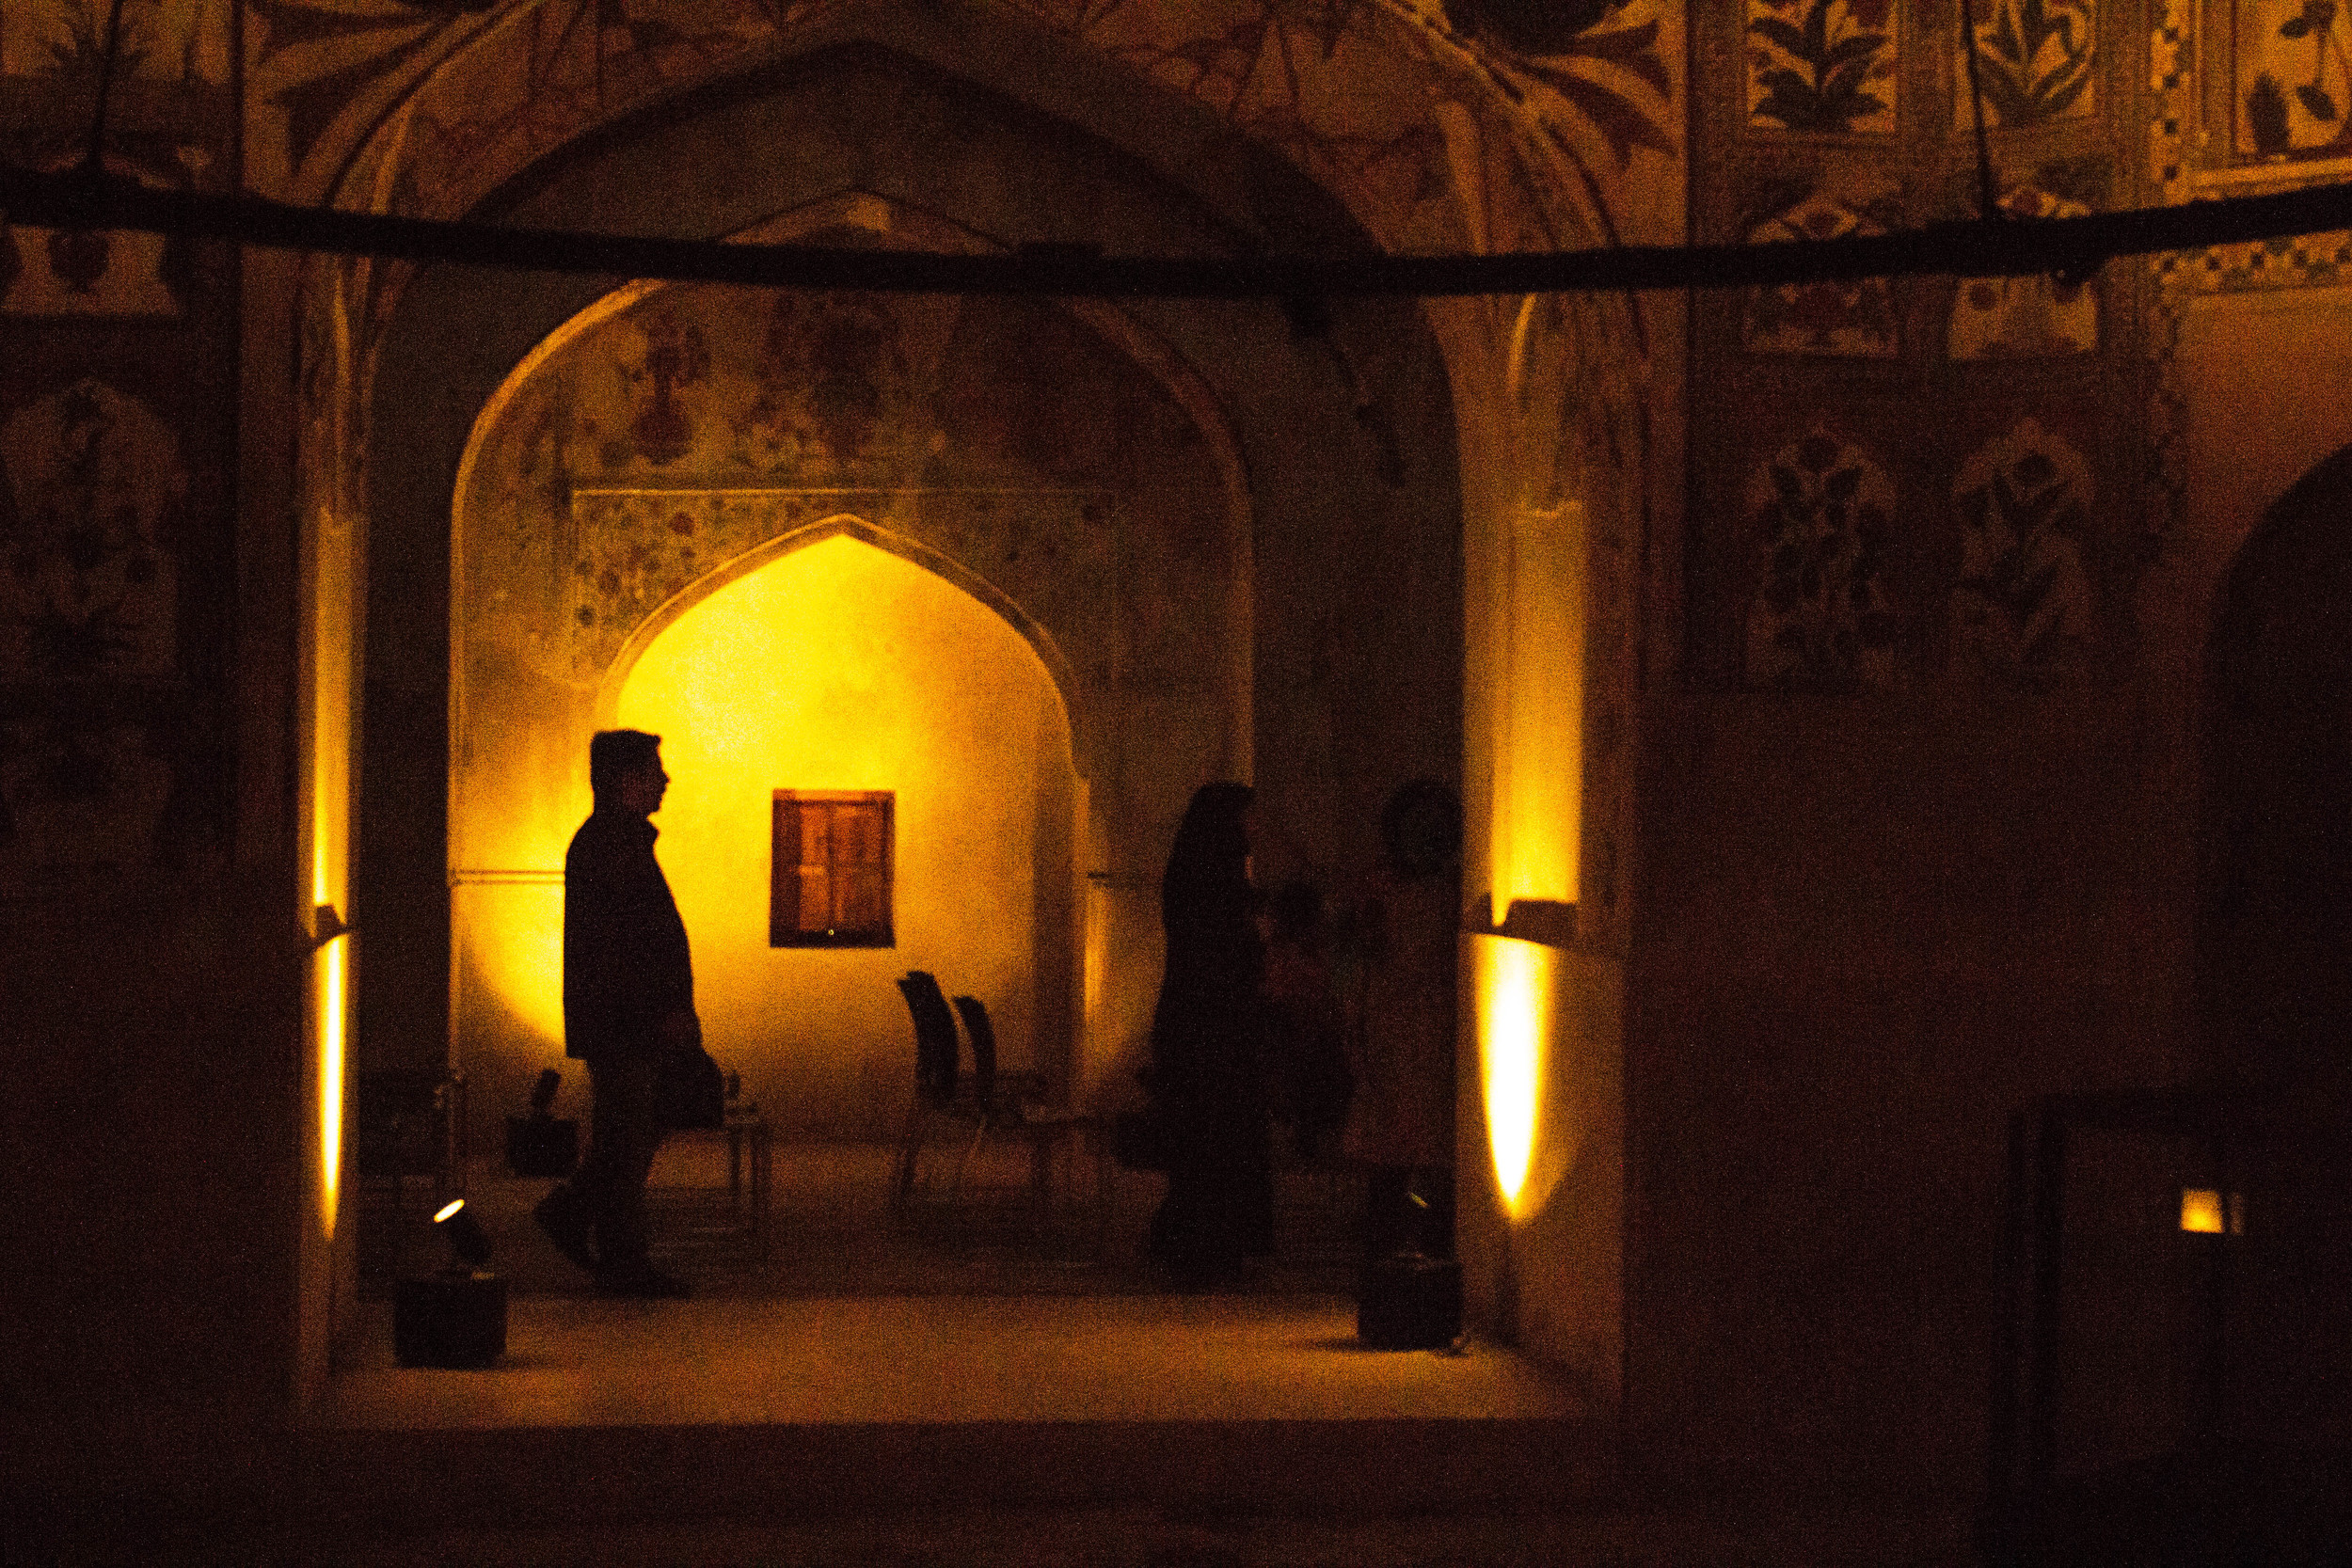 Tourists pass through the Shahi Hamam,also known as Wazir Khan Hamam. It was built by Wazir Khan in 1633 A.D. during the era of the fifth Moghul Emperor,Shah Jehan.